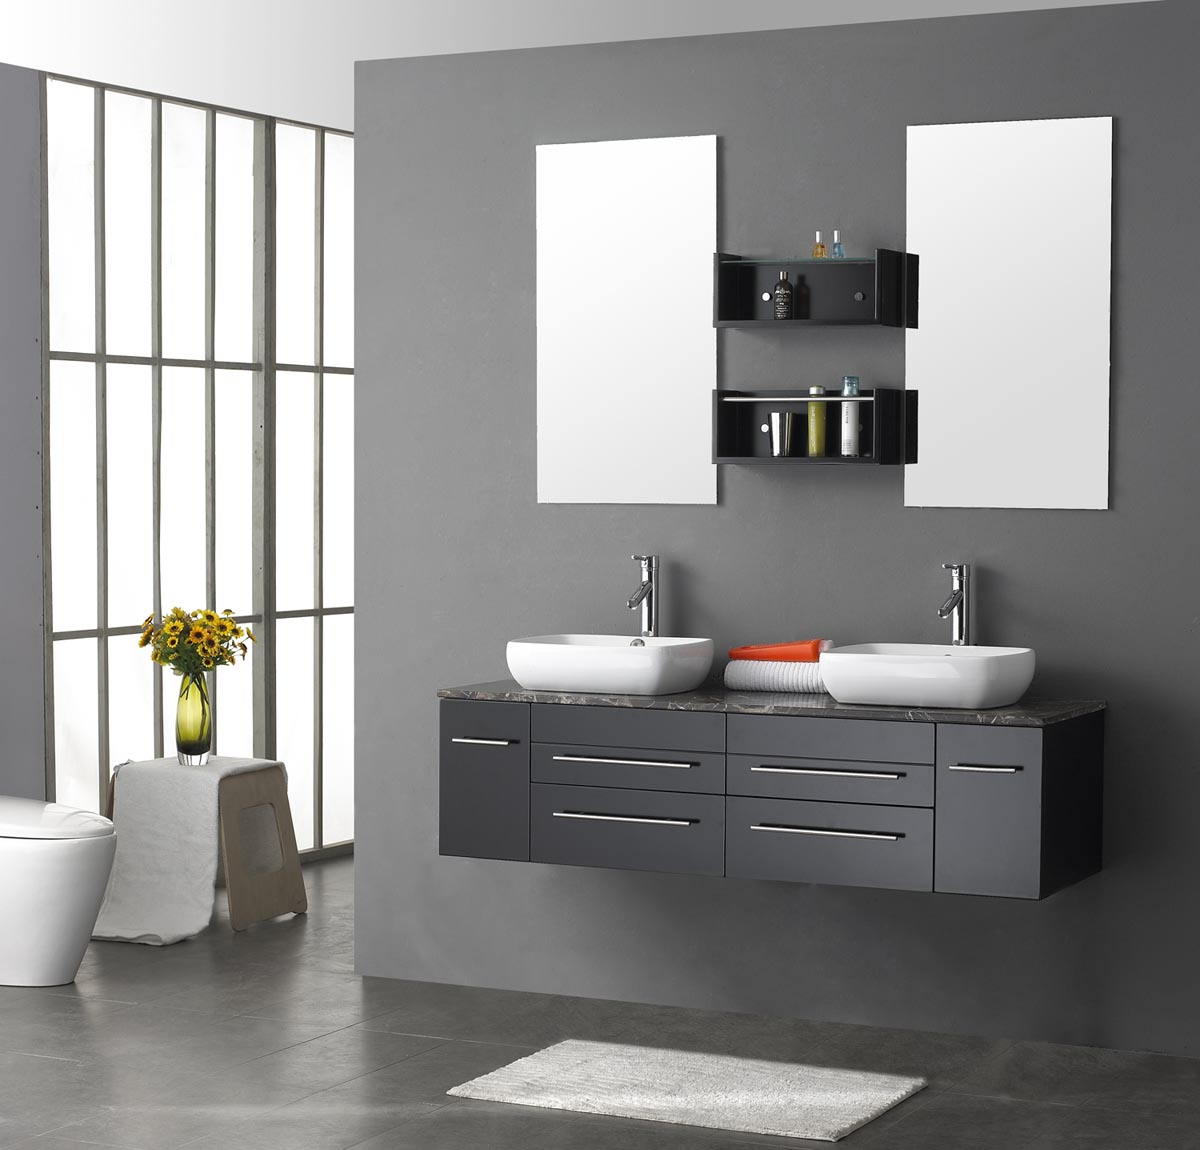 free standing bathroom cabinets argos free standing bathroom cabinets argos 23214 | free standing bathroom cabinets argos